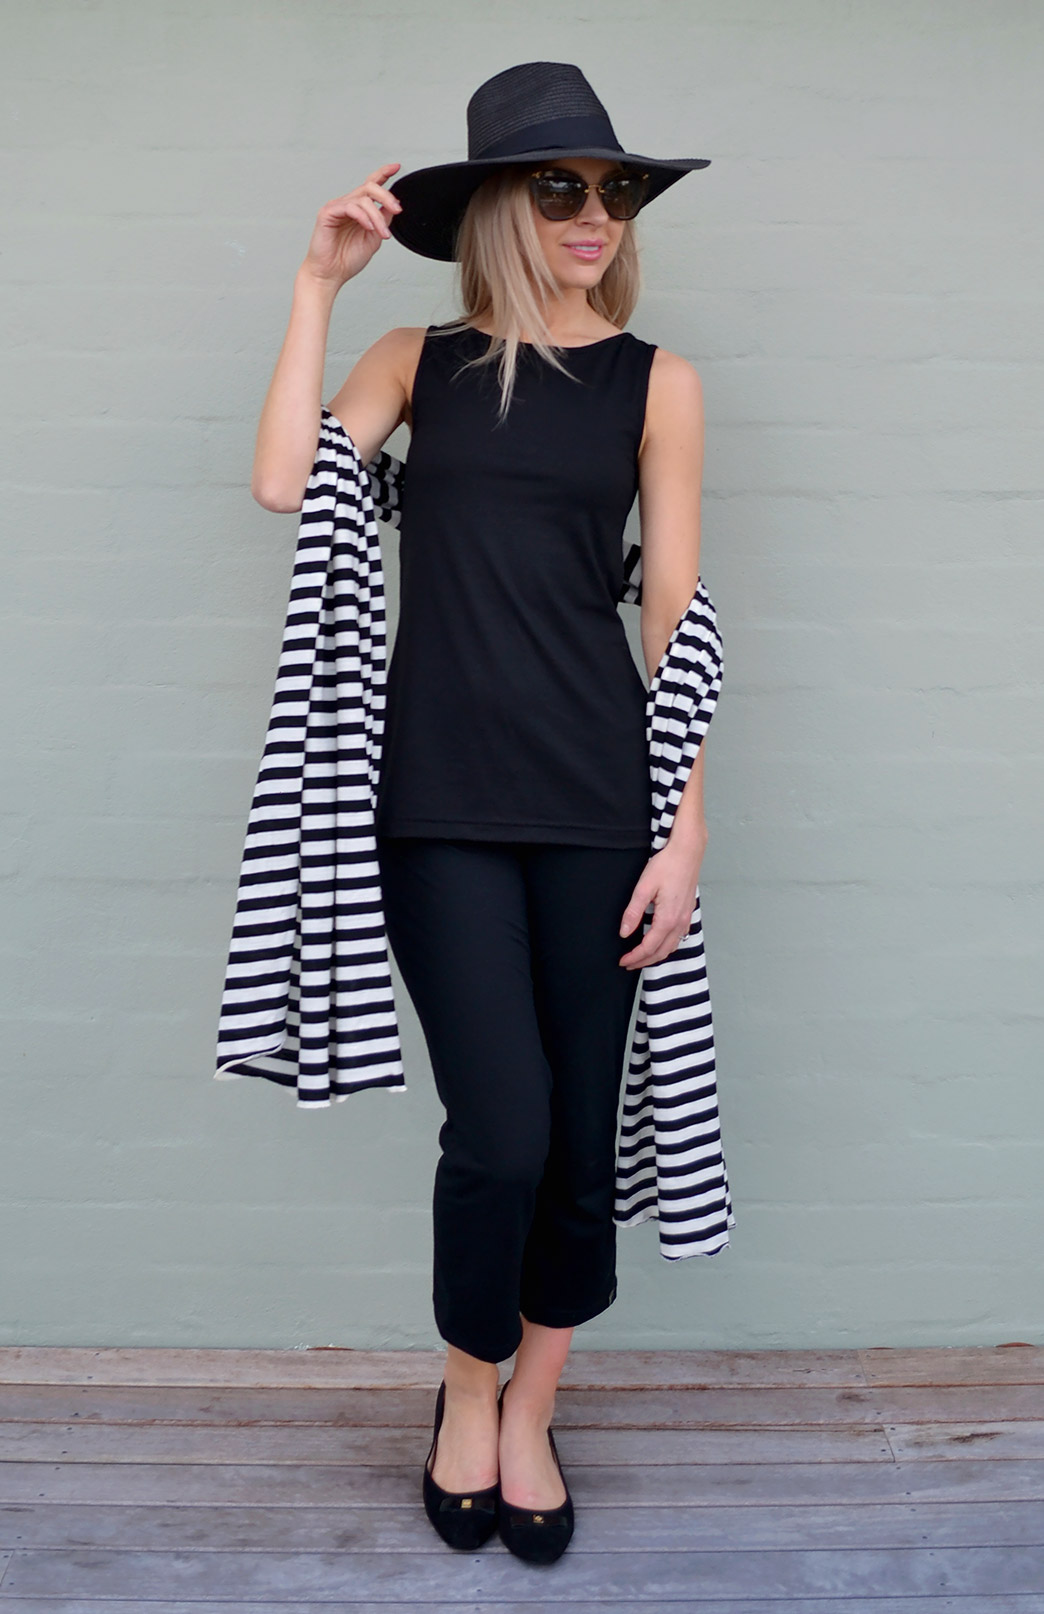 Capri Tank Top - Women's Black Merino Sleeveless Summer Top - Smitten Merino Tasmania Australia